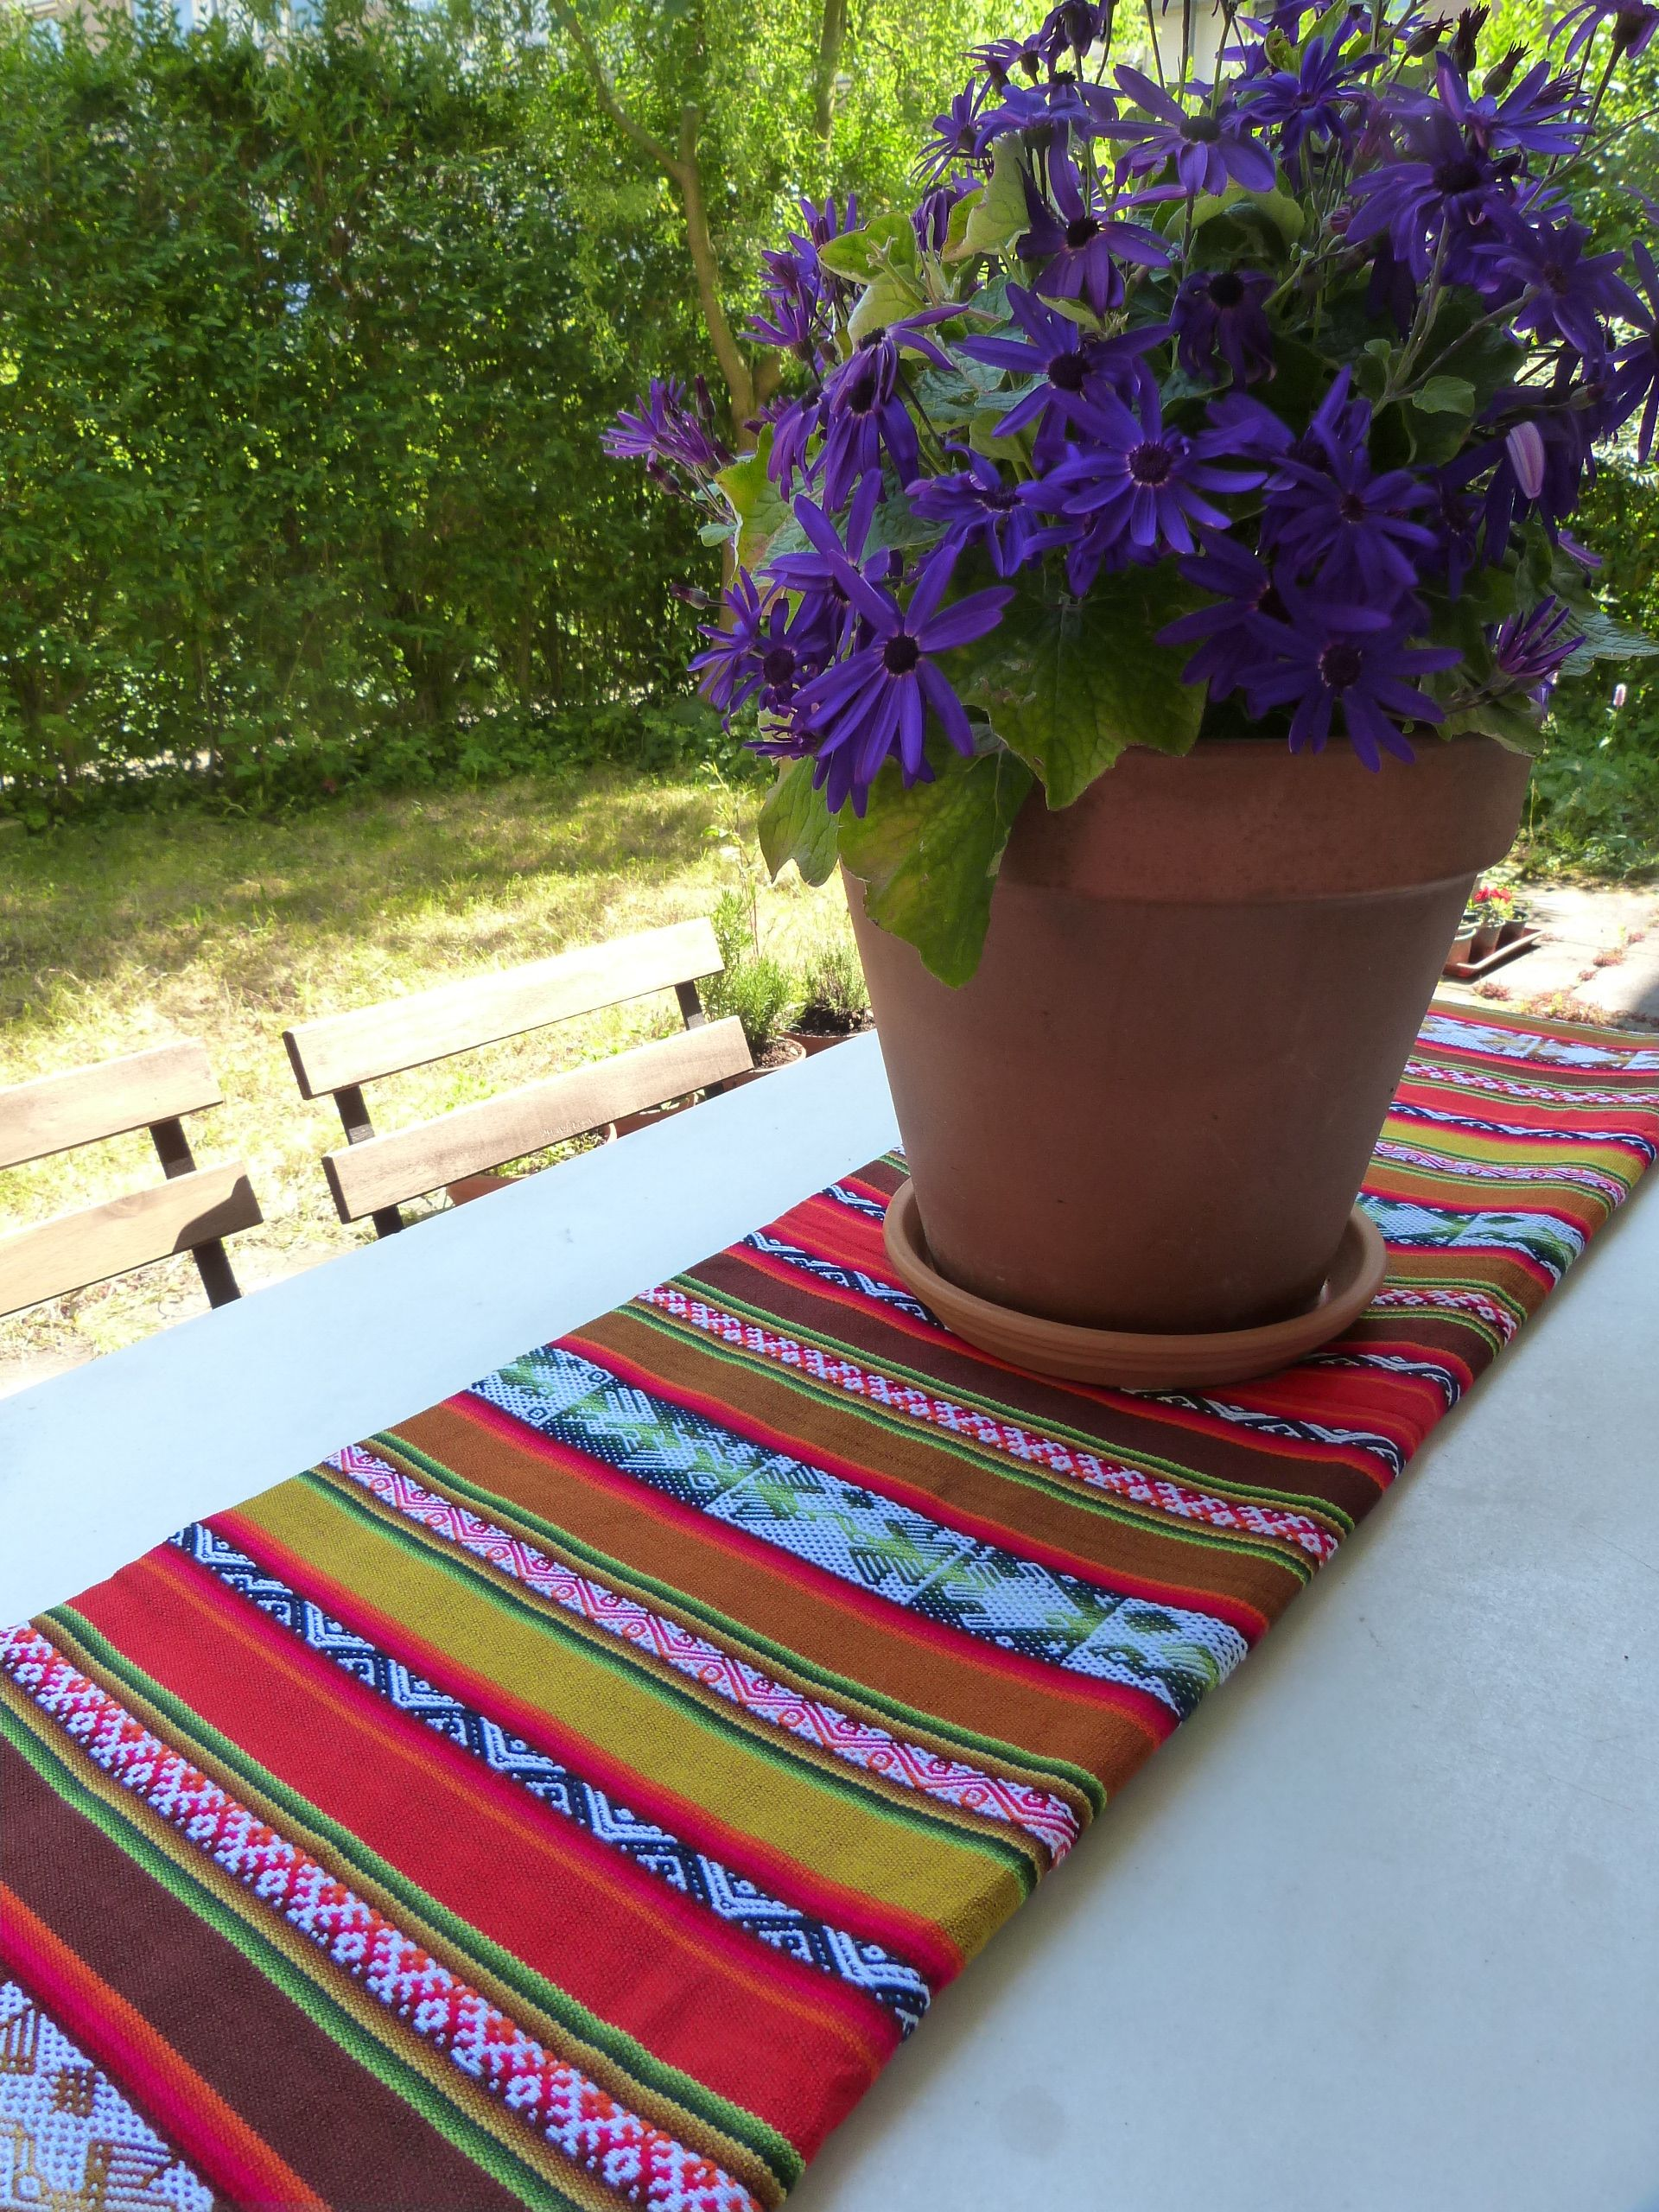 Colorful Tablecloth From The Andes Http://www.uitdeandes.nl/product